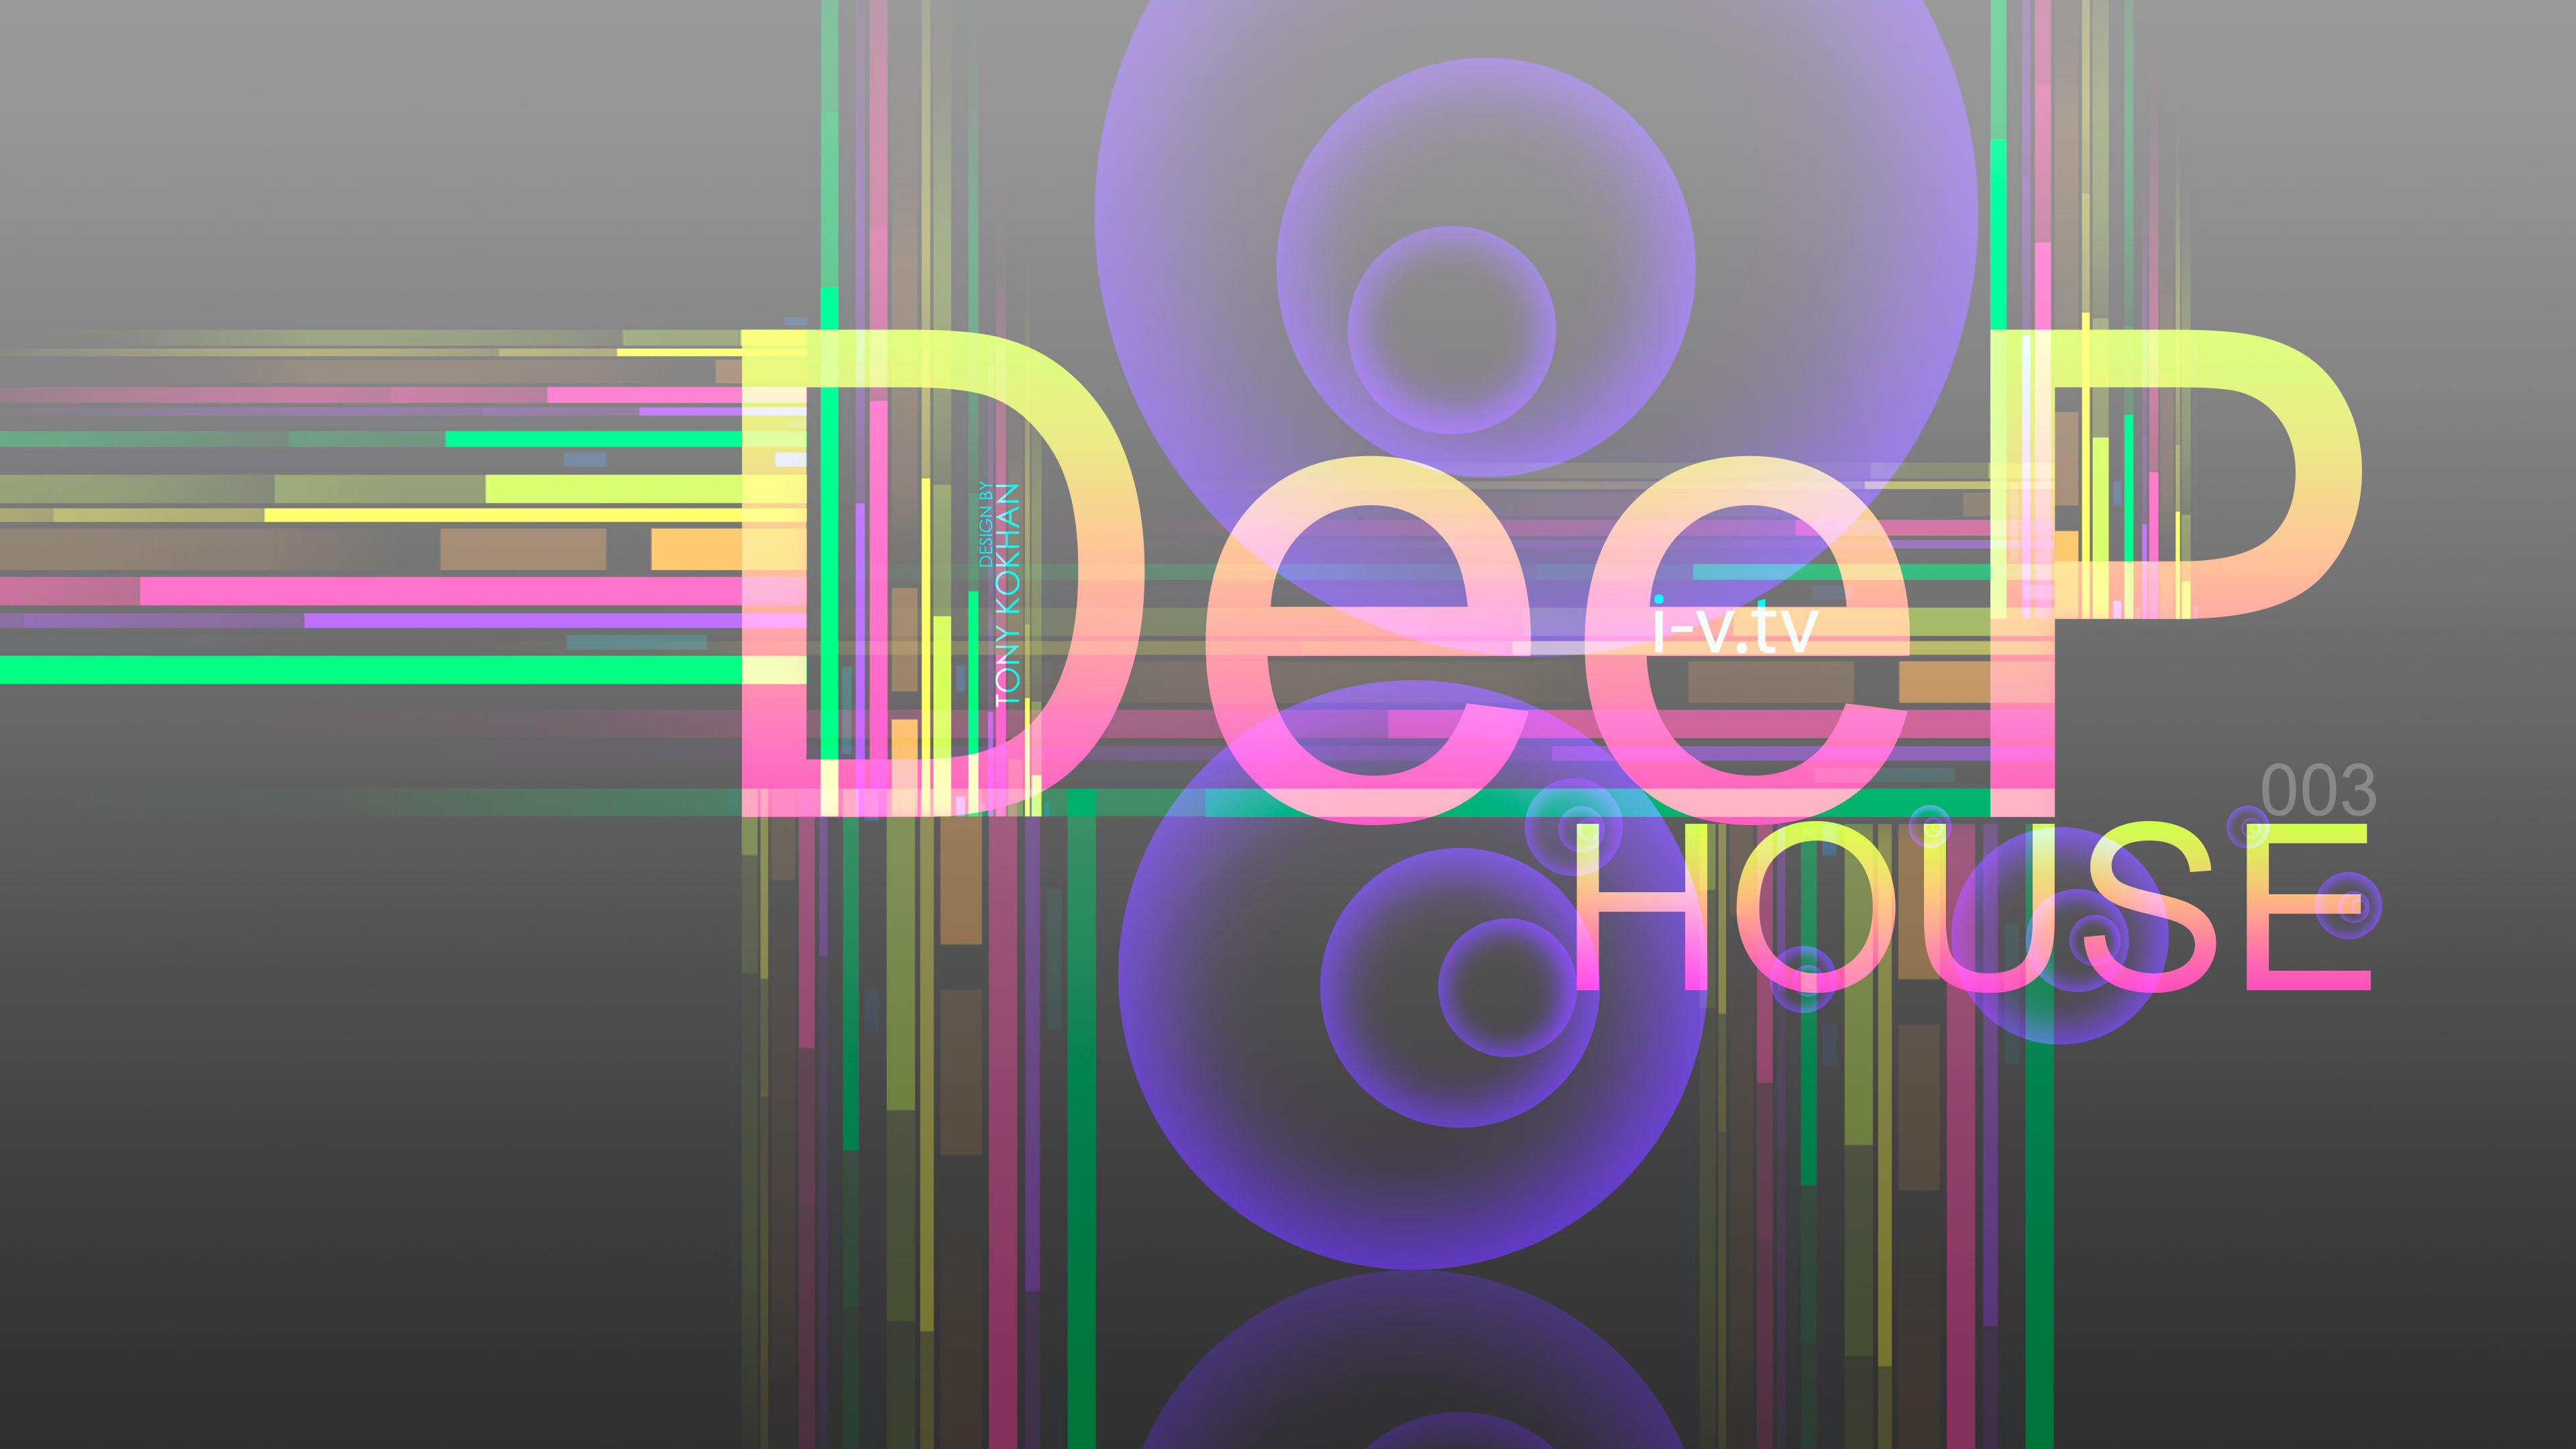 House music wallpaper wallpapersafari for House music facts